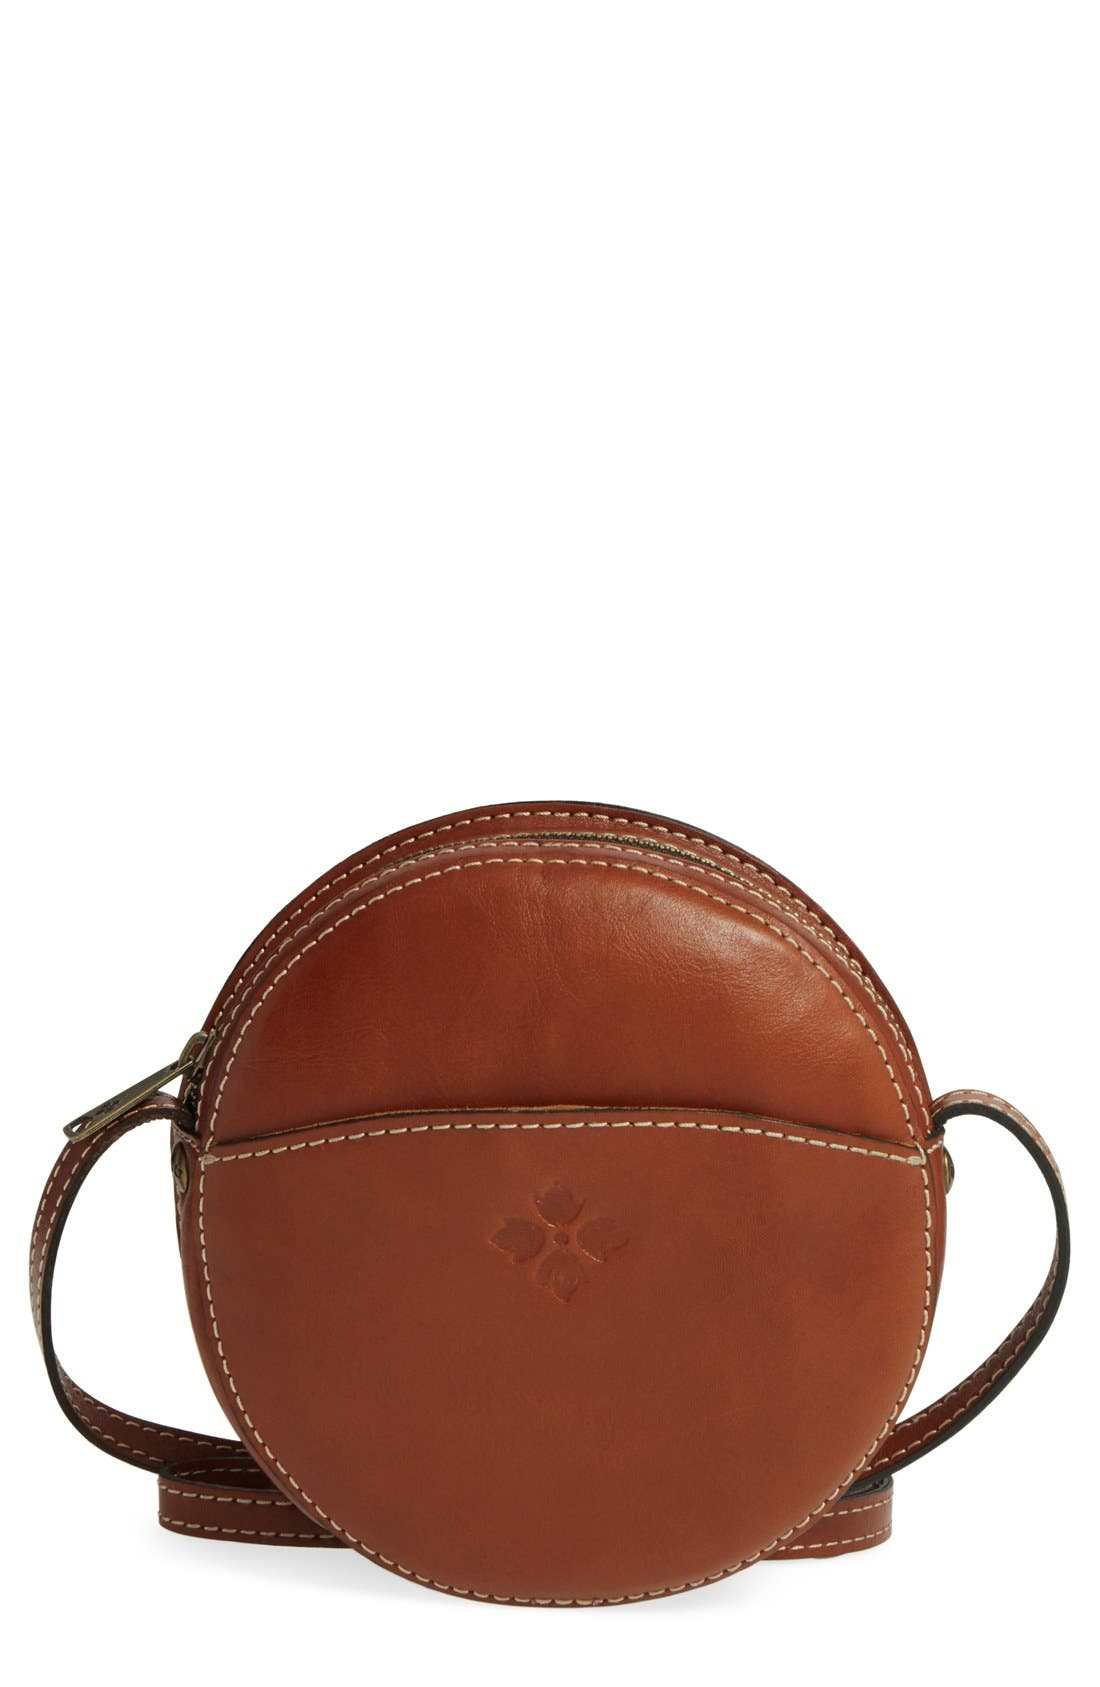 Main Image - Patricia Nash 'Small Scafati' Leather Crossbody Bag